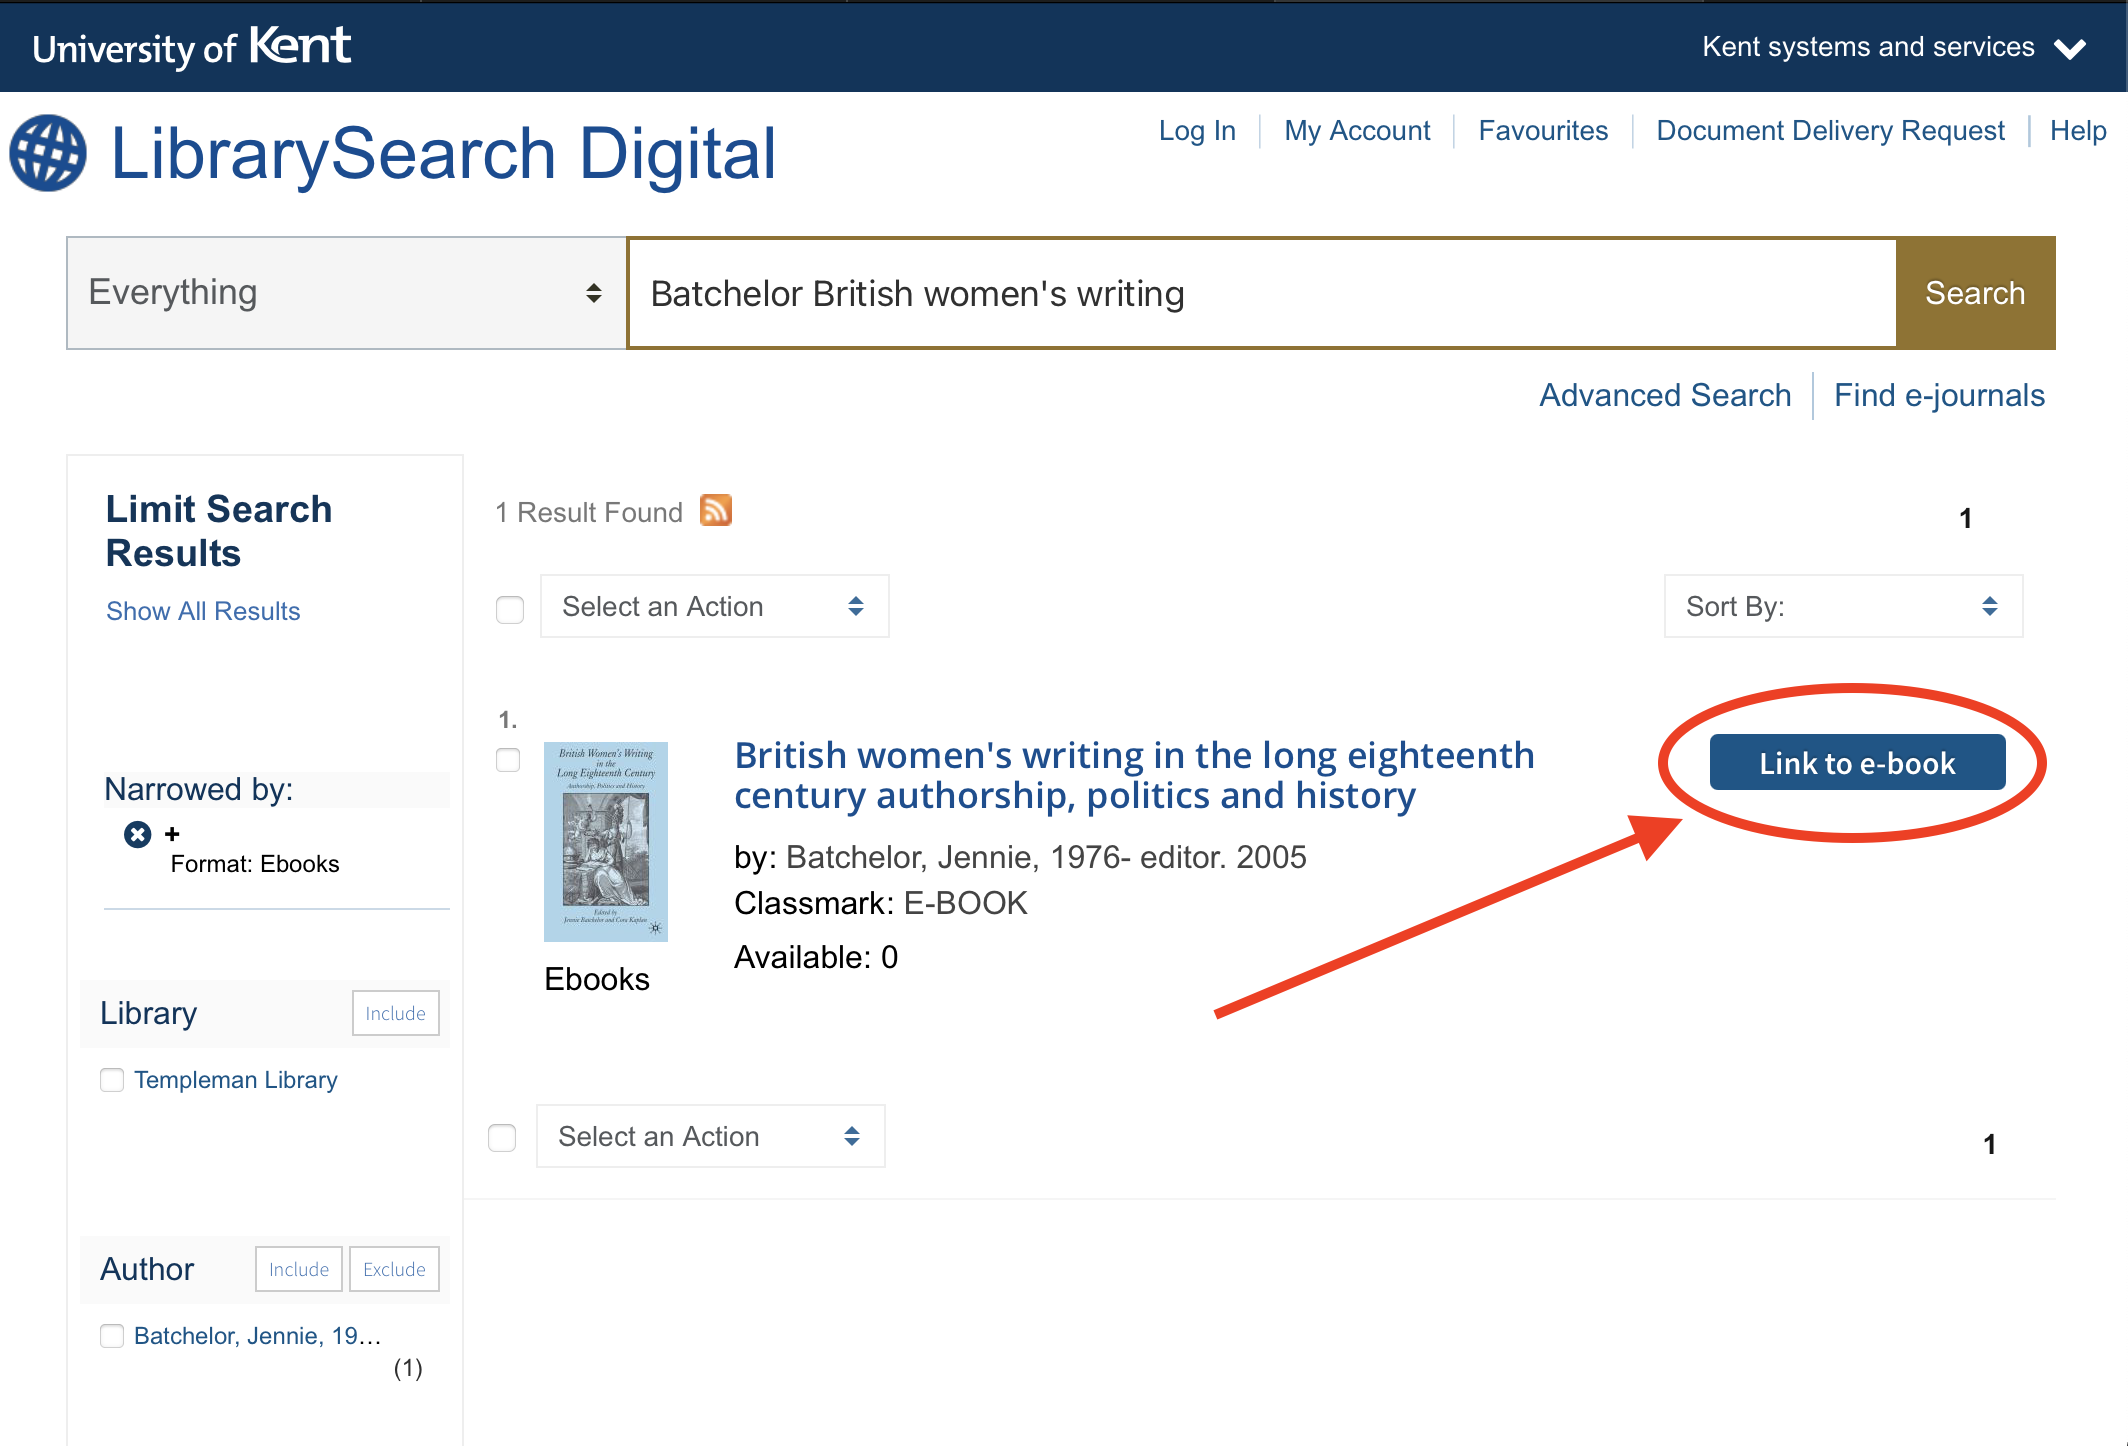 Screenshot of Library Search Digital results page indicating where to find link to e-book